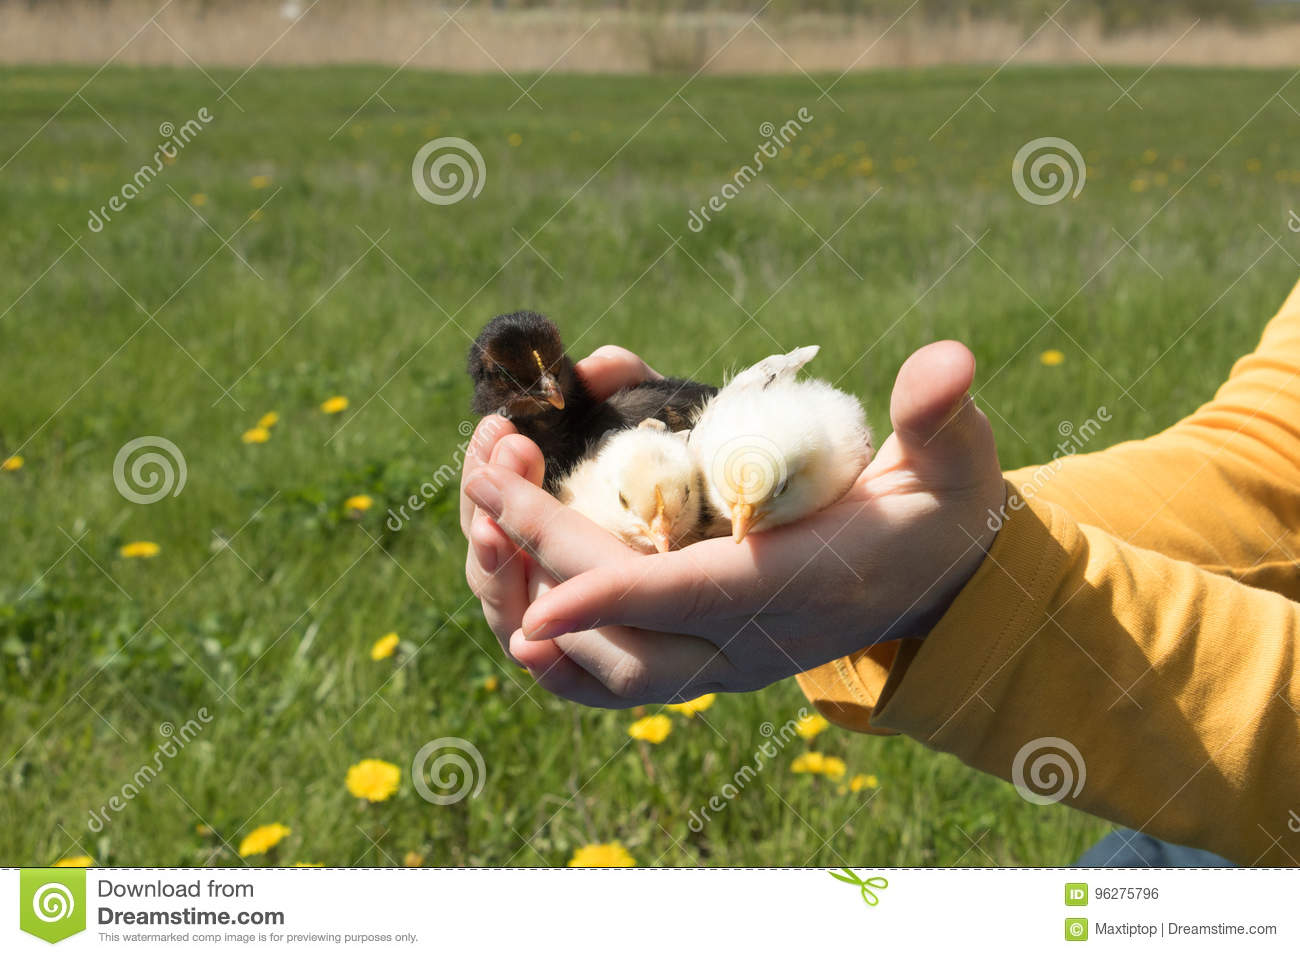 Small chickens in the palms